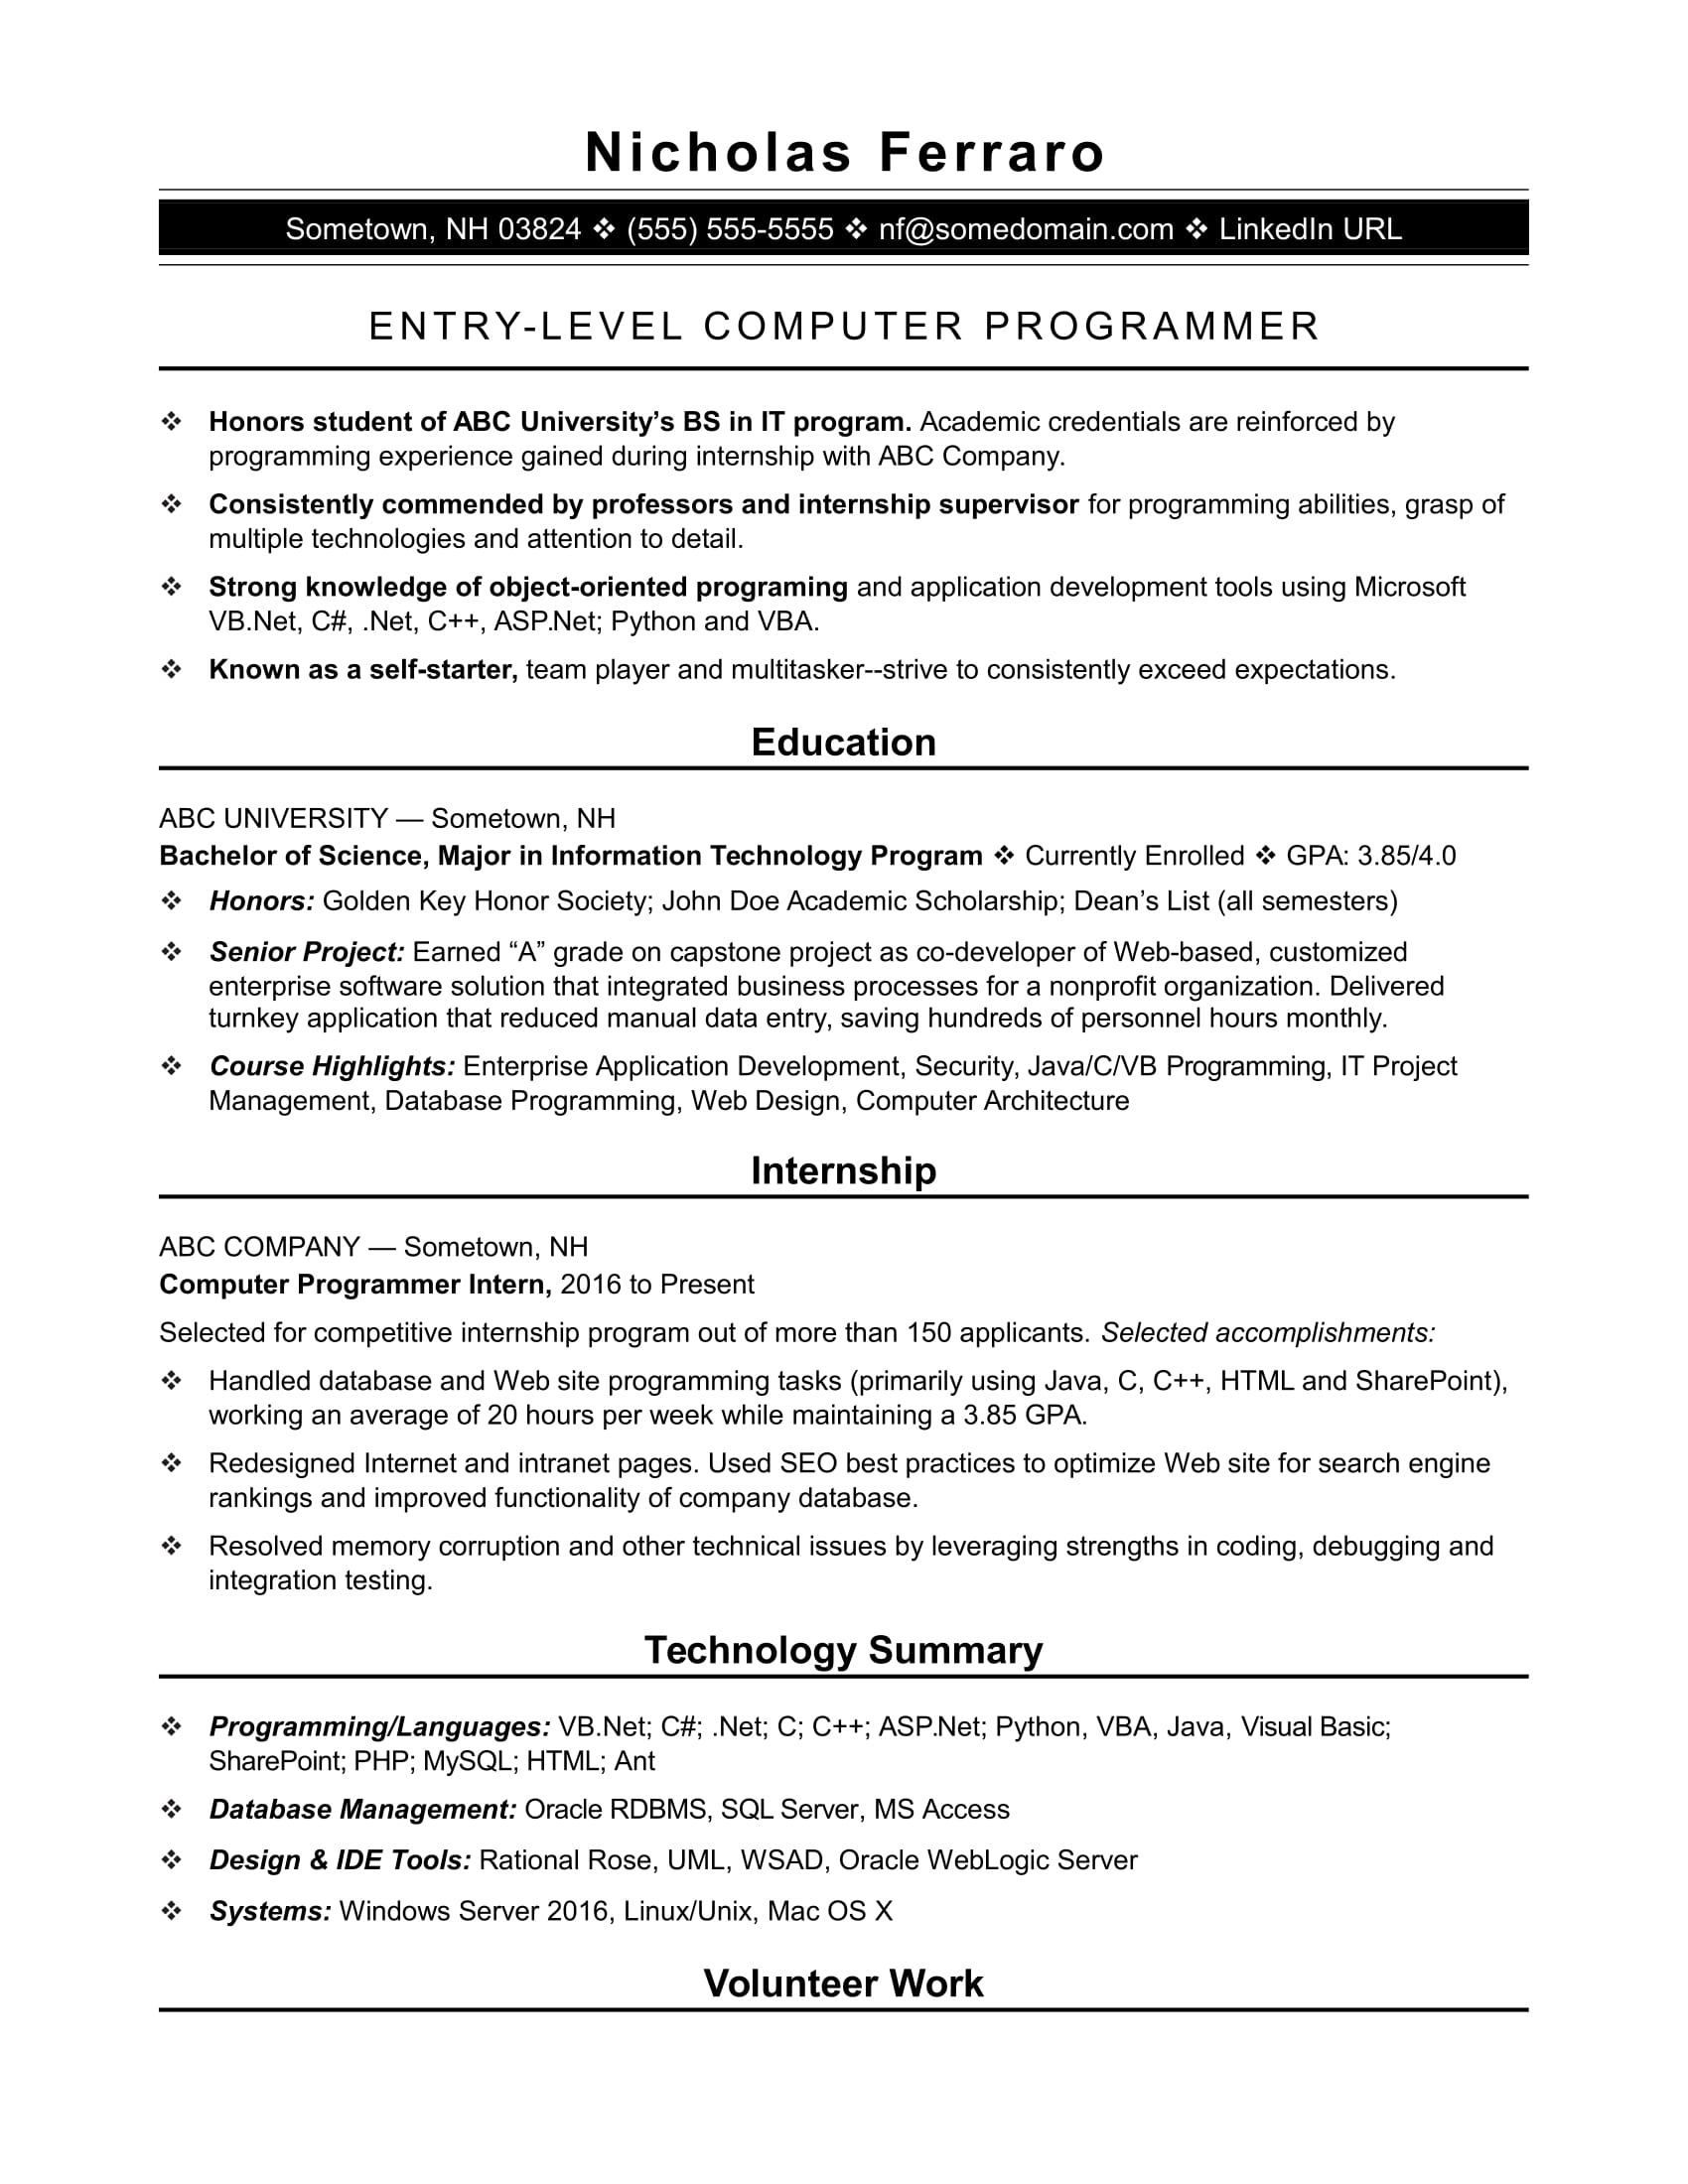 Beautiful Sample Resume For An Entry Level Computer Programmer Ideas Programming Resume Examples